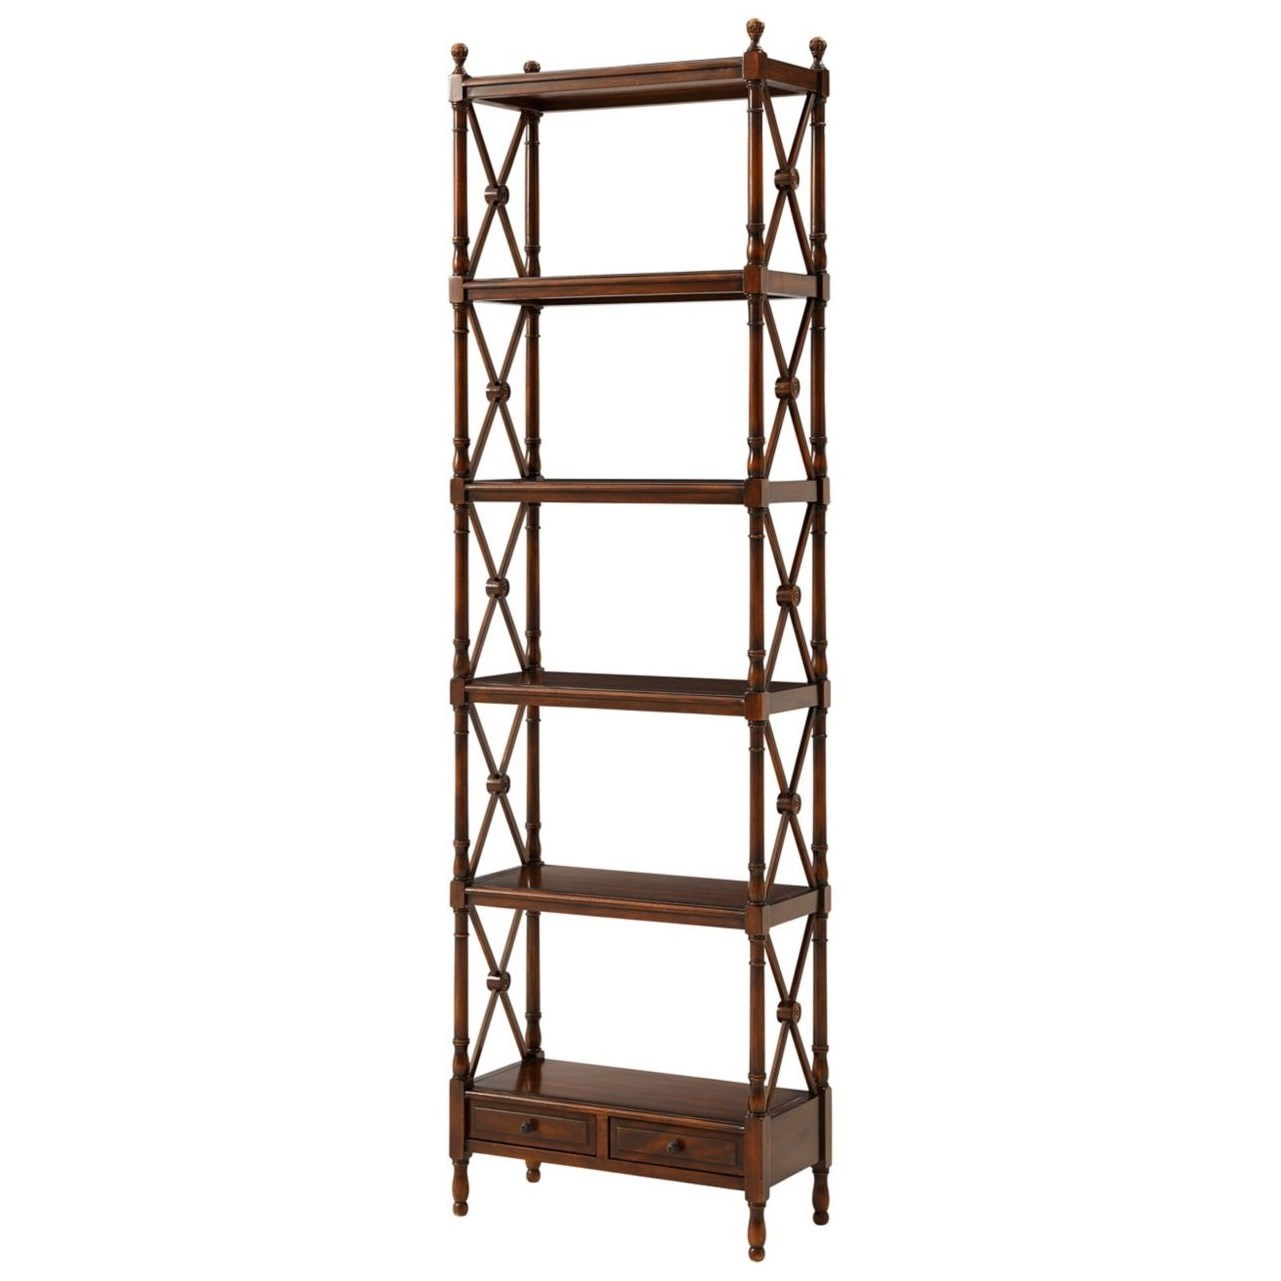 Essential TA A Display from the Regency Etagere by Theodore Alexander at Baer's Furniture